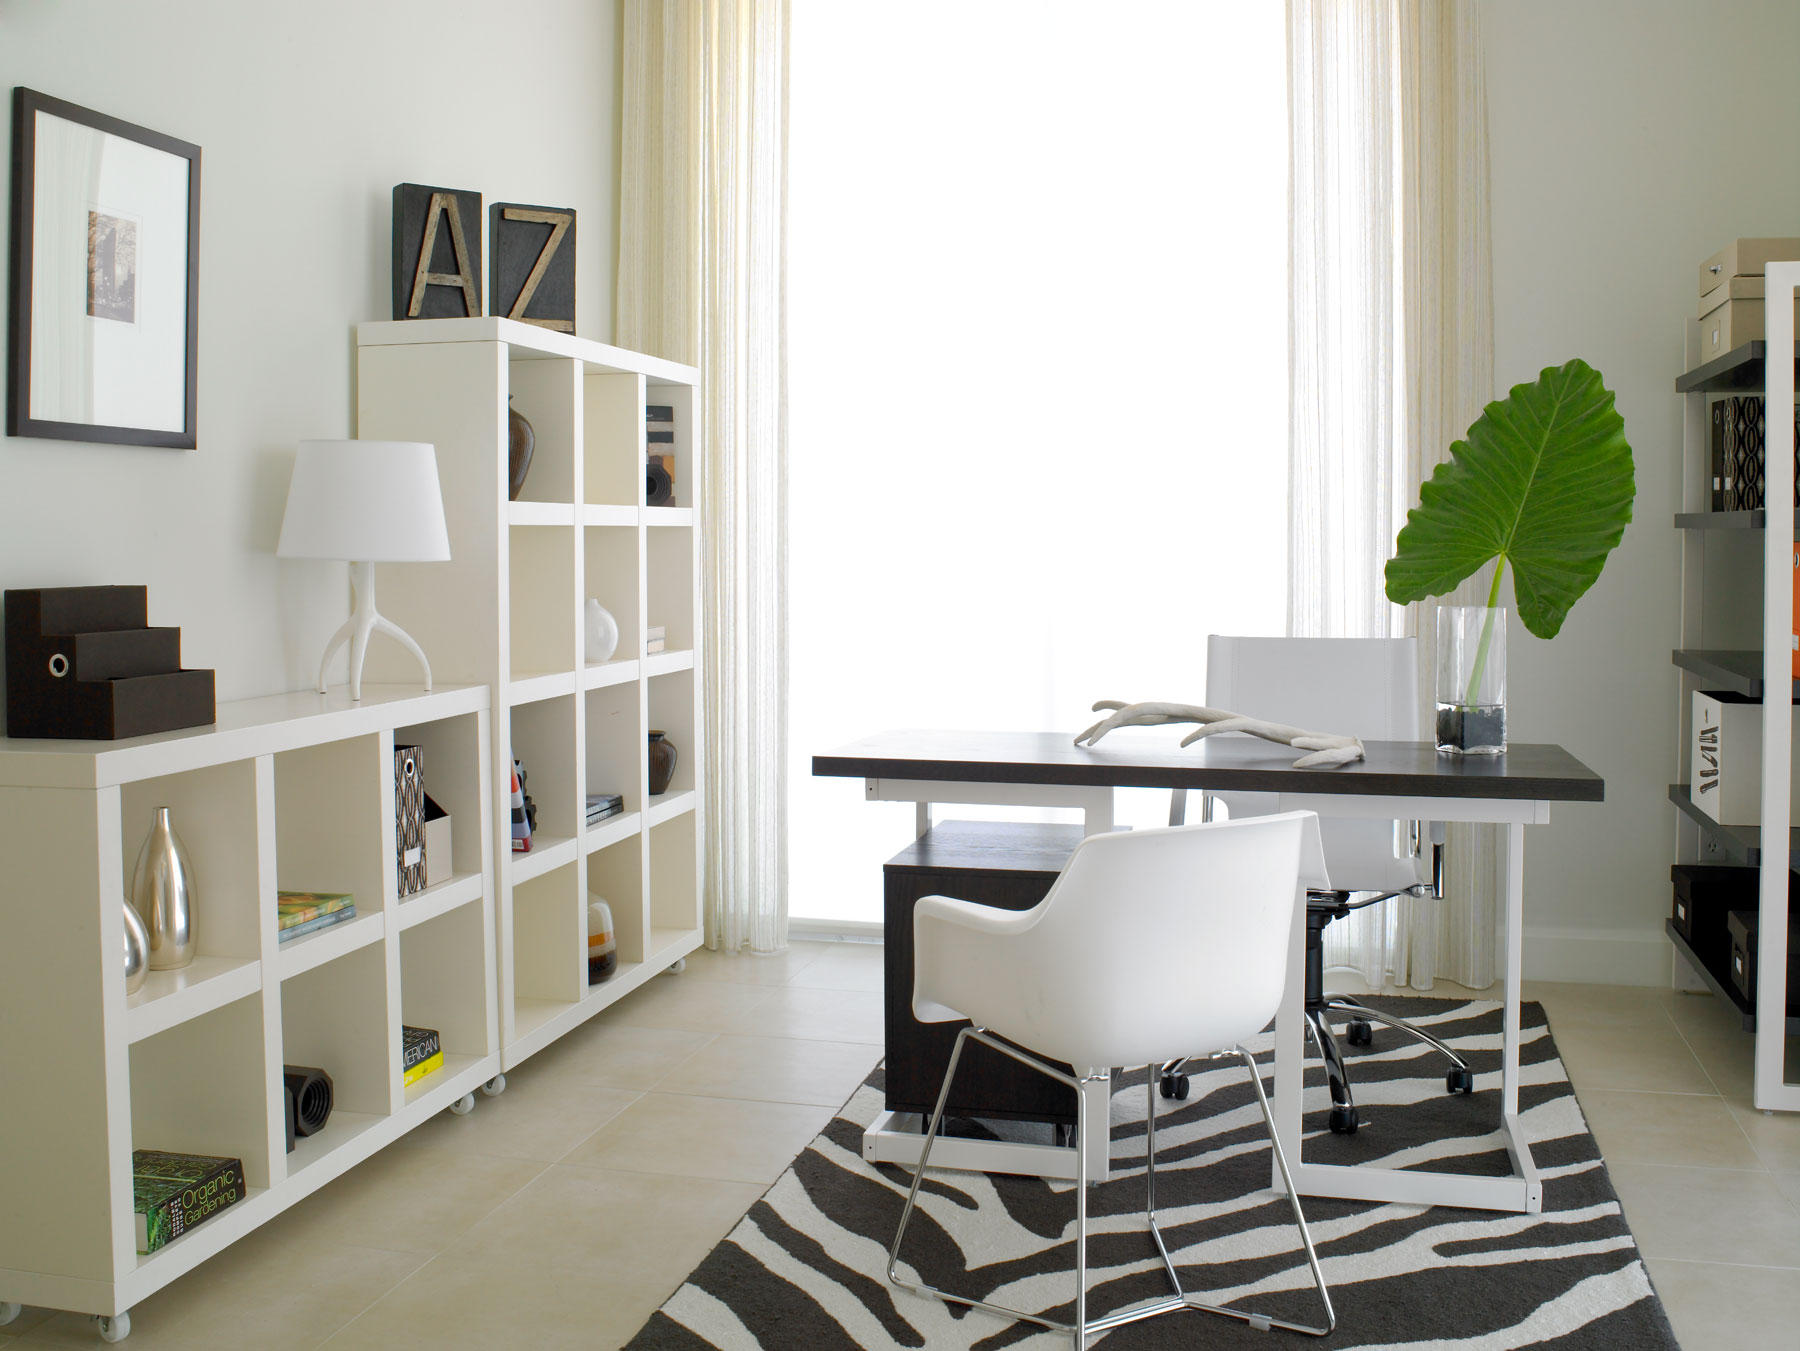 Beckoning Interior Modern Home Office Using Lush Desk and Chairs